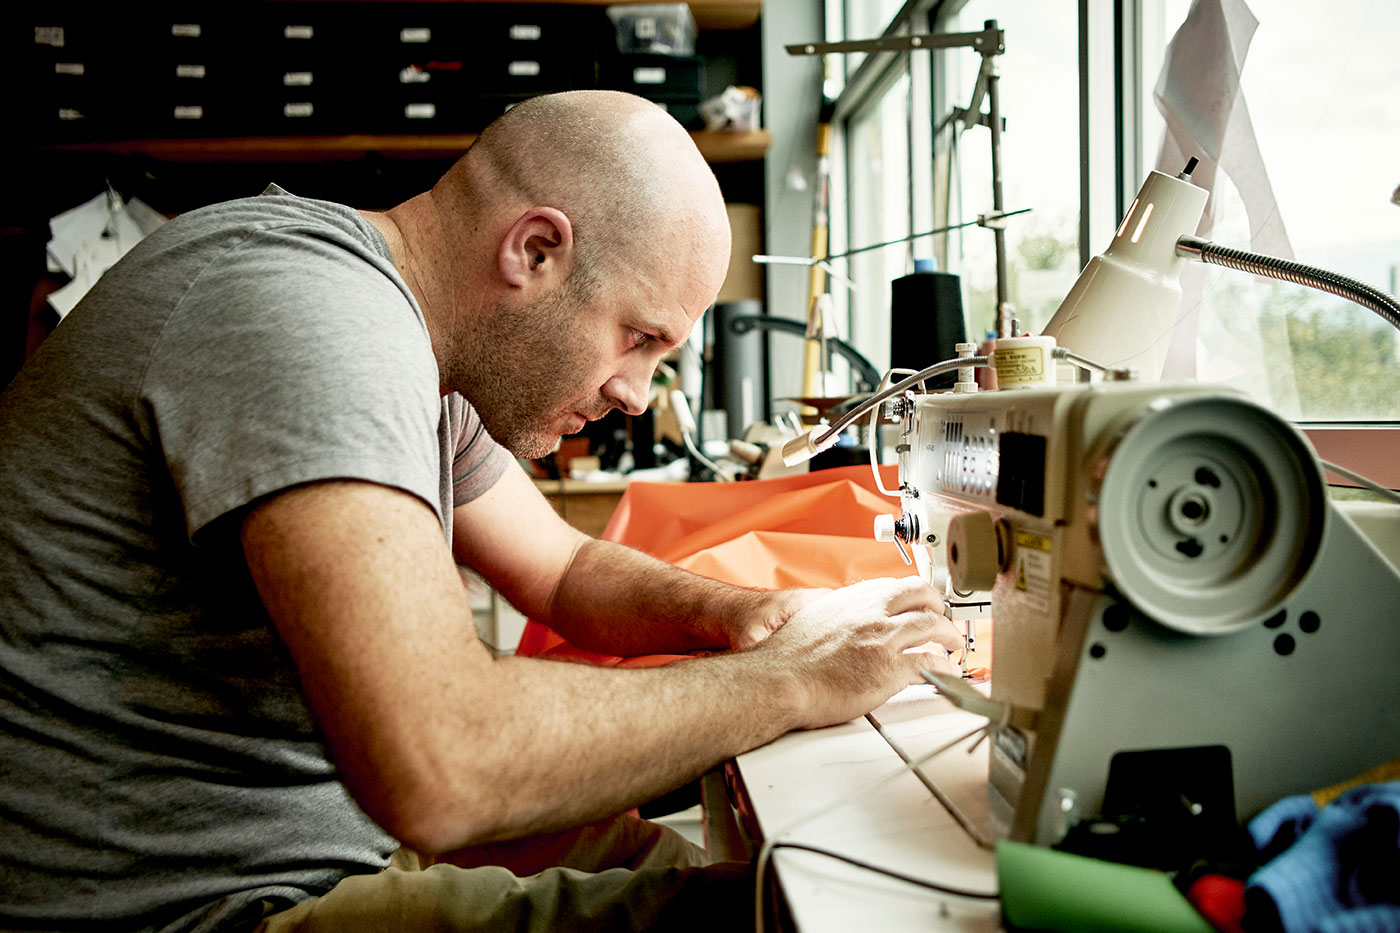 Ian Martin at the sewing machine